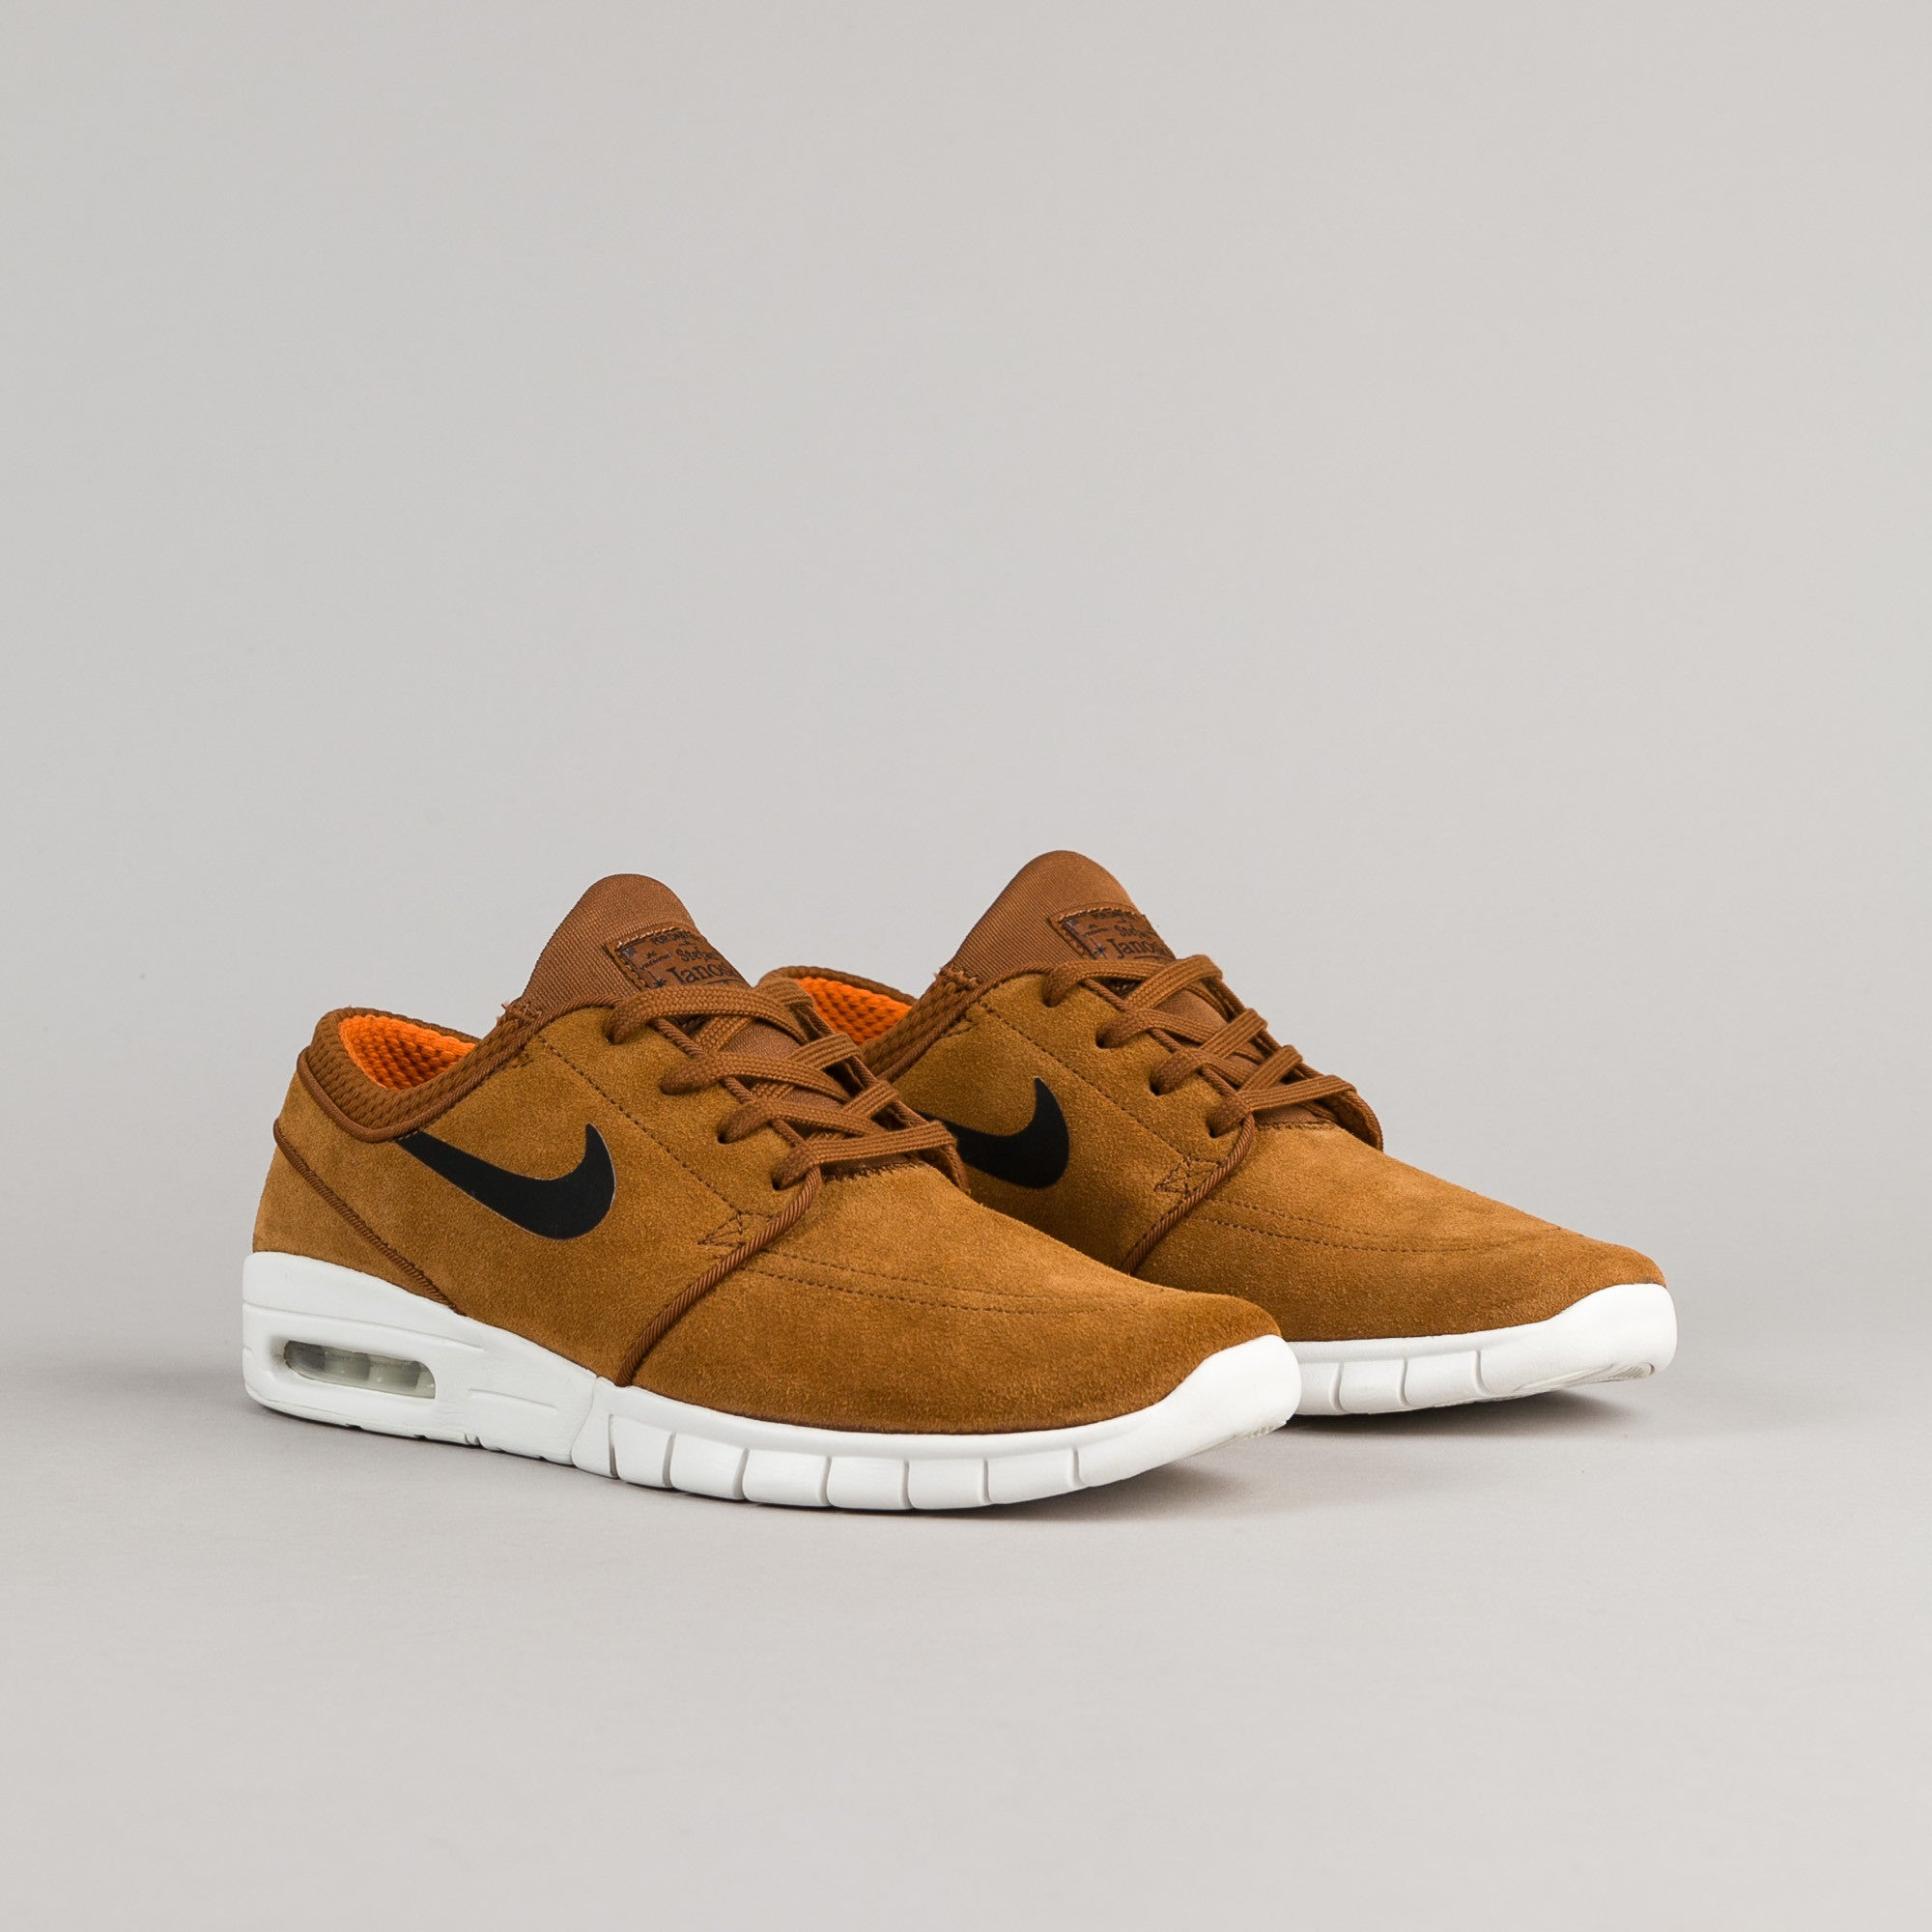 Nike SB Stefan Janoski Max Suede Shoes - Hazelnut / Black - Ivory - Clay Orange